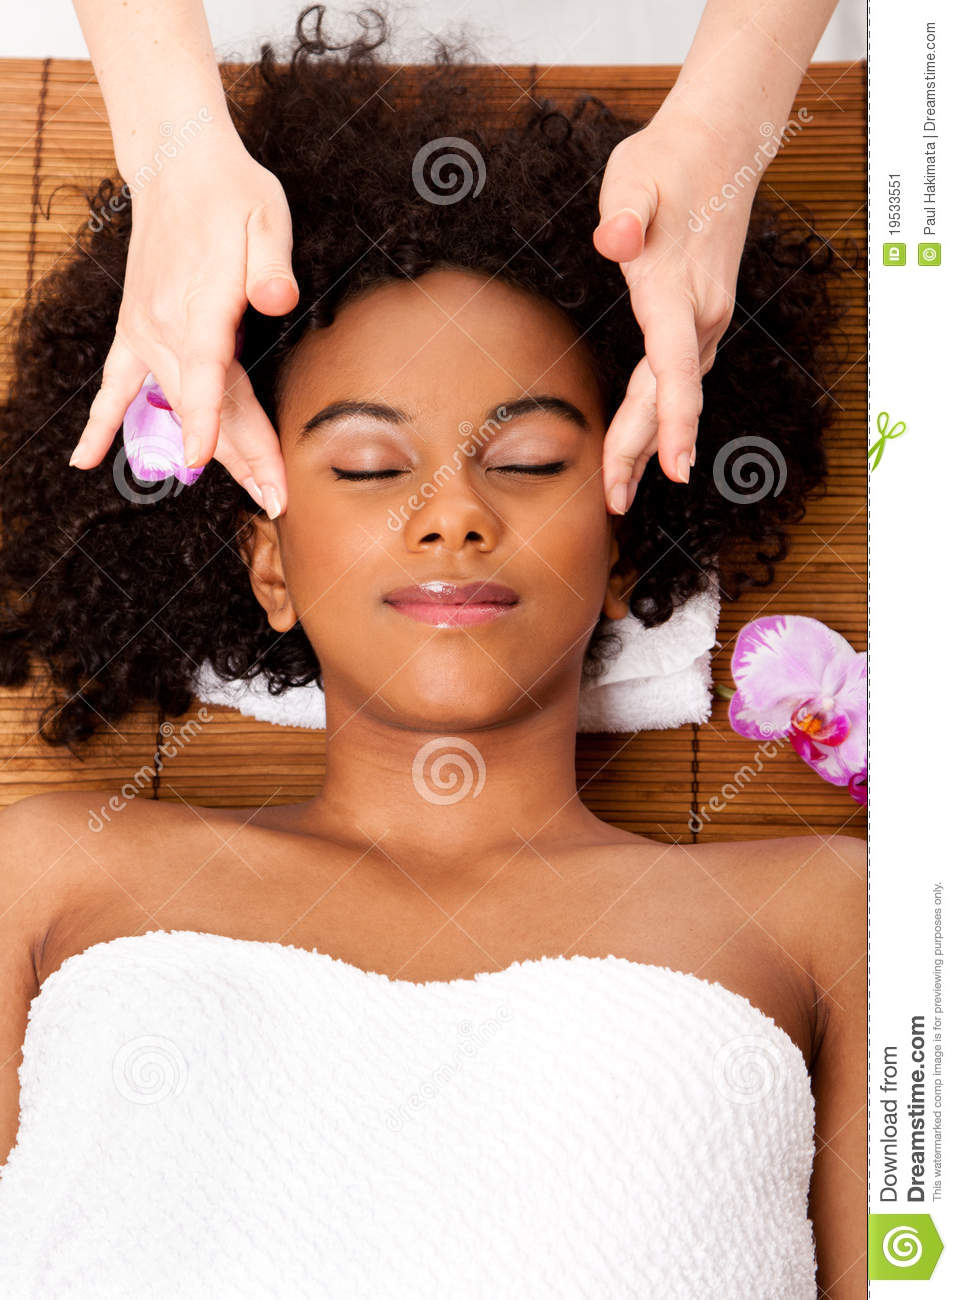 Facial Temple Massage In Beauty Spa Stock Image  Image